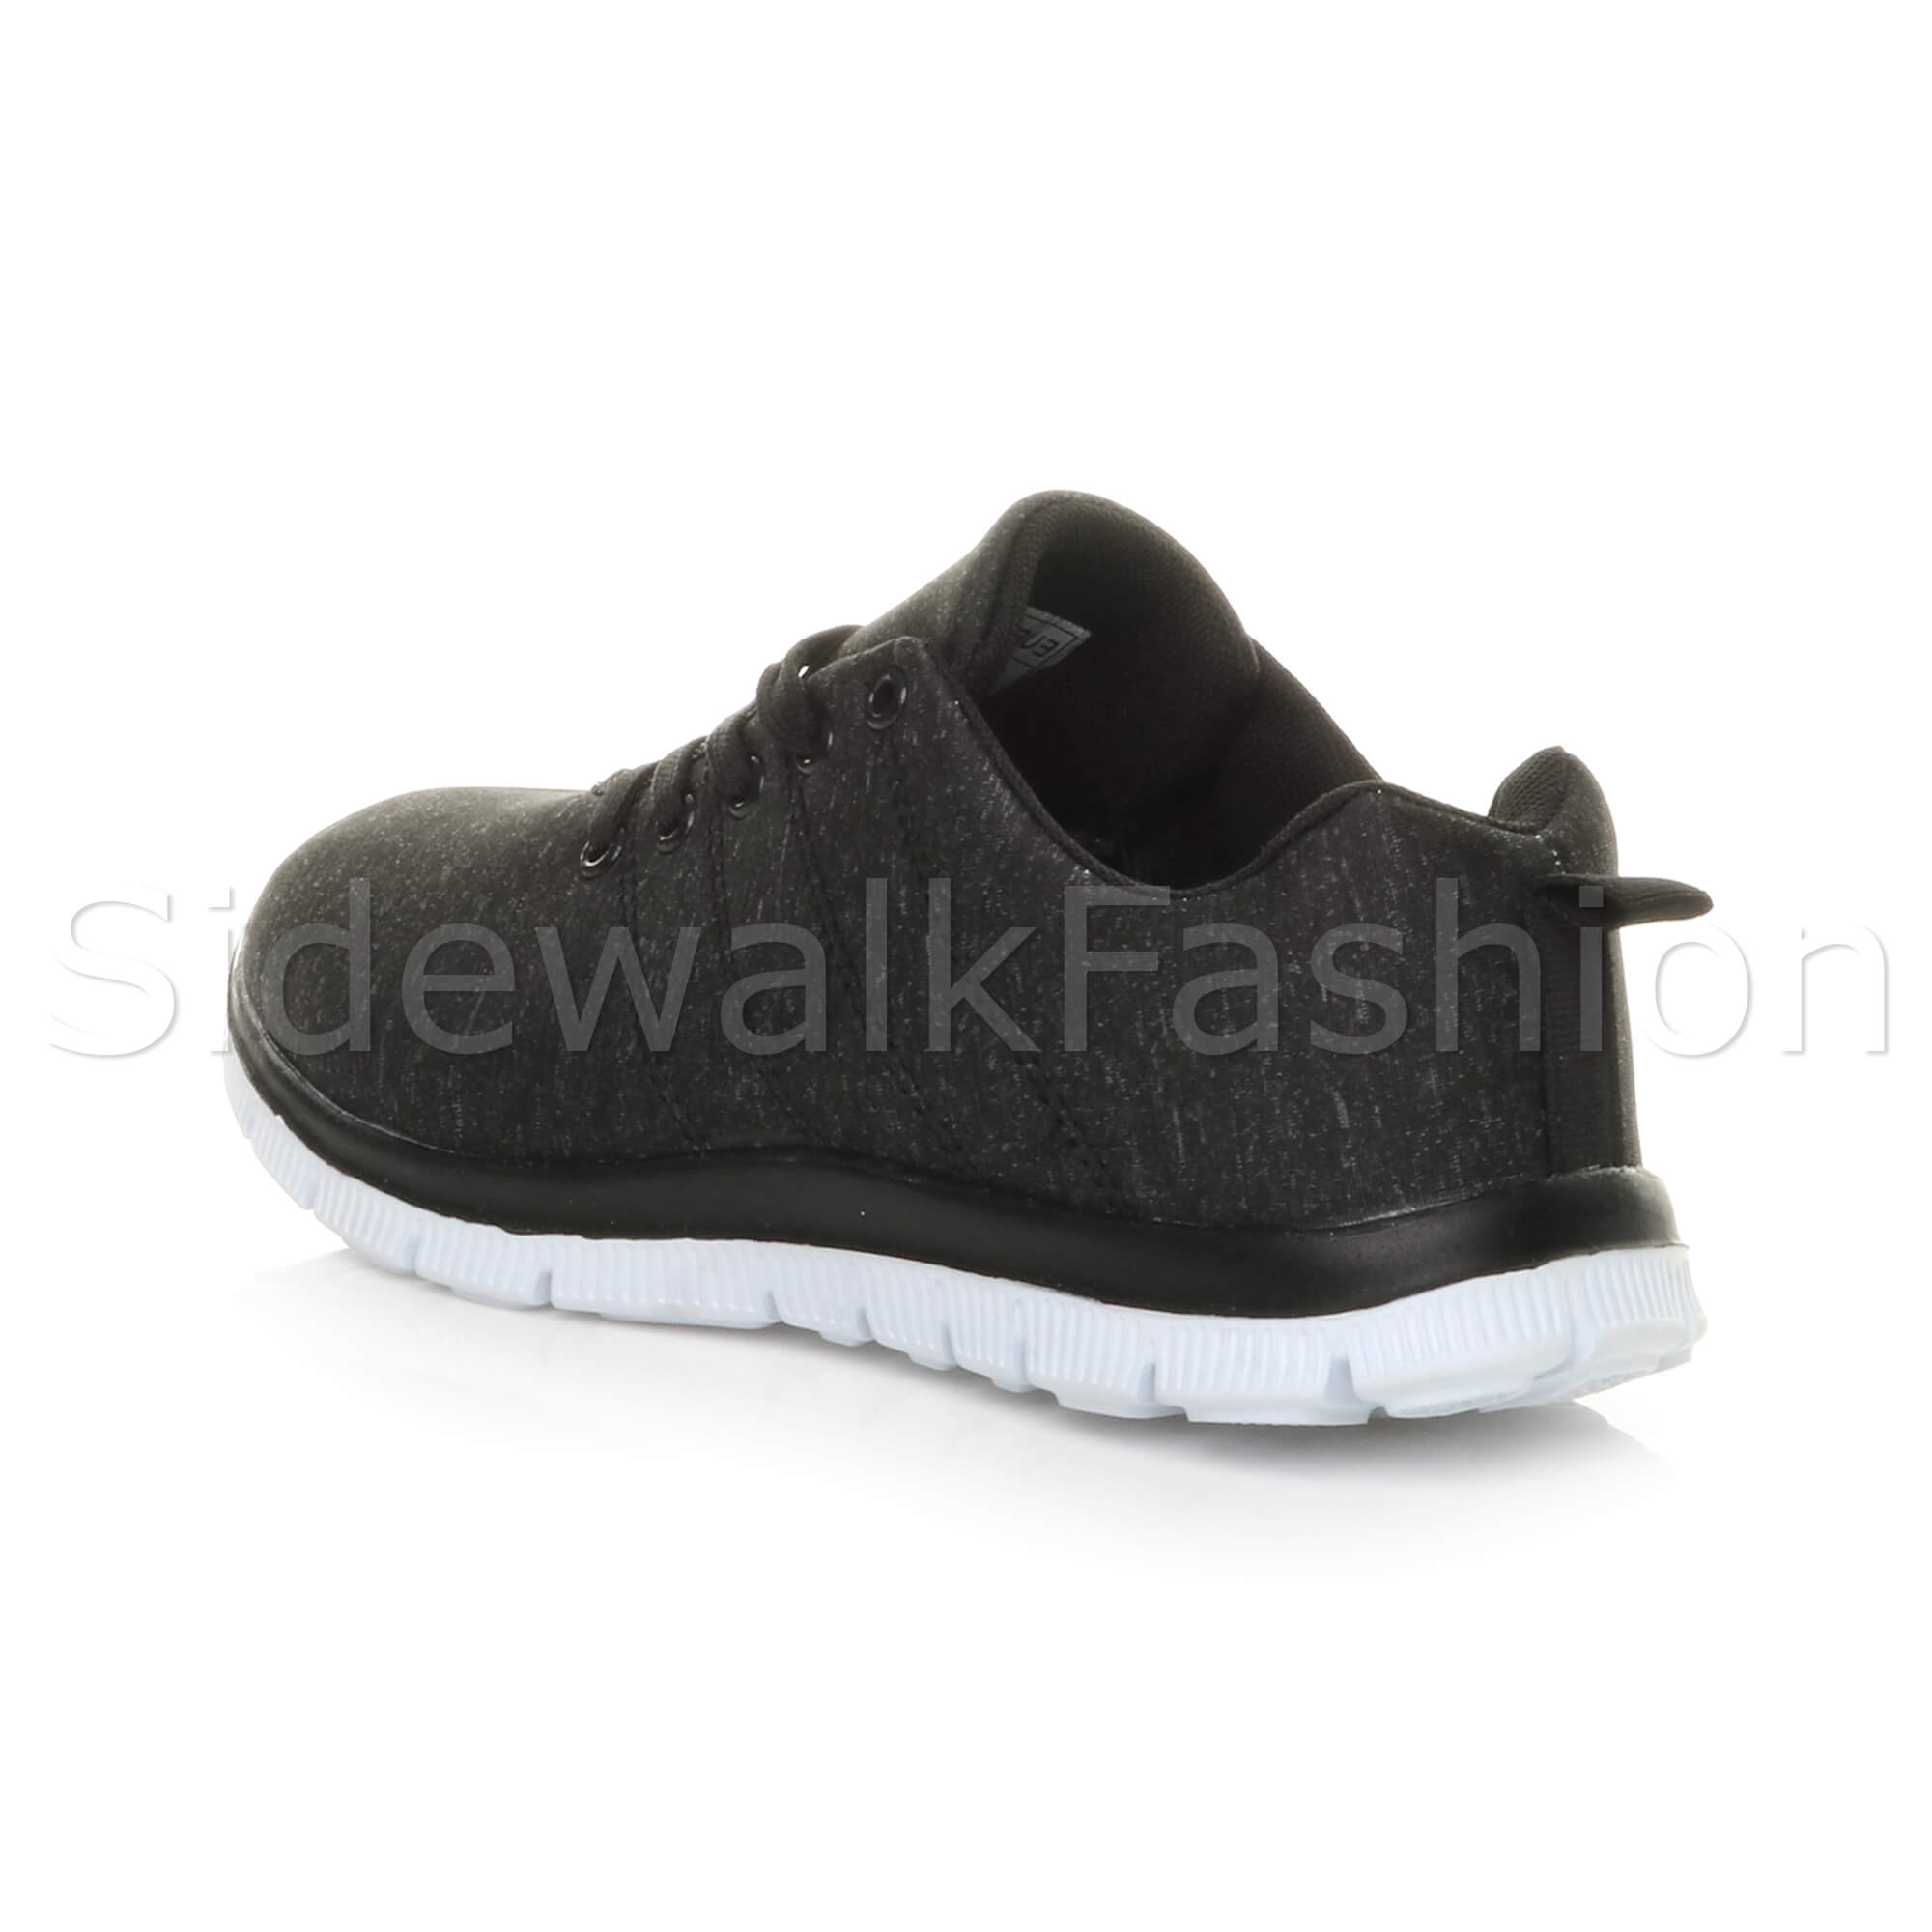 Womens-ladies-comfort-memory-foam-lace-up-trainers-activewear-sneakers-gym-shoes thumbnail 23